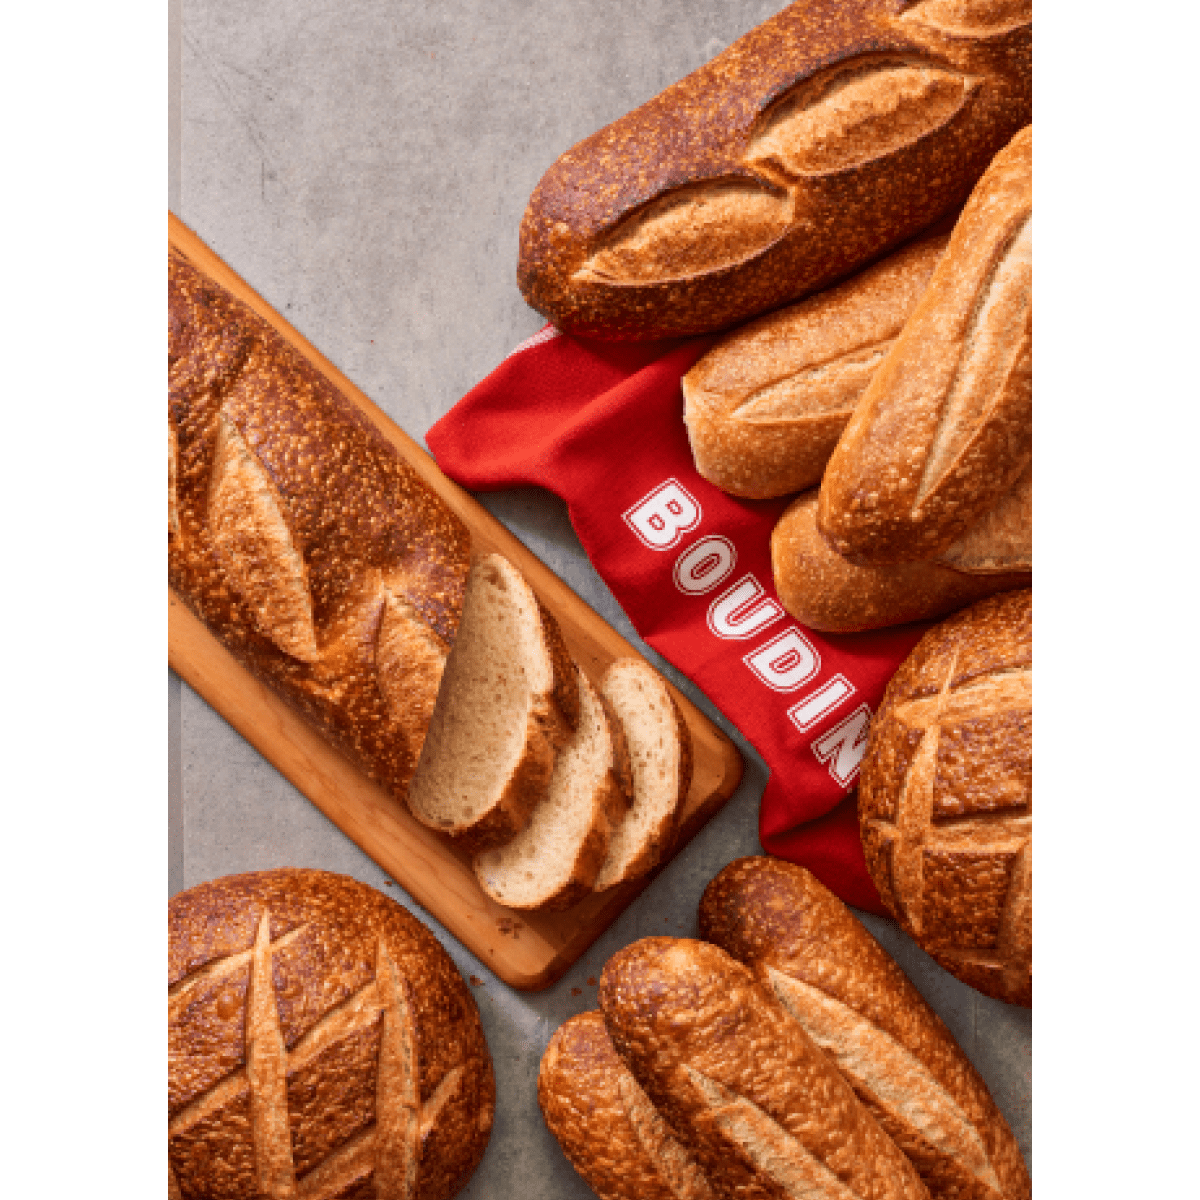 Boudin Bakery Specialty Bread Club